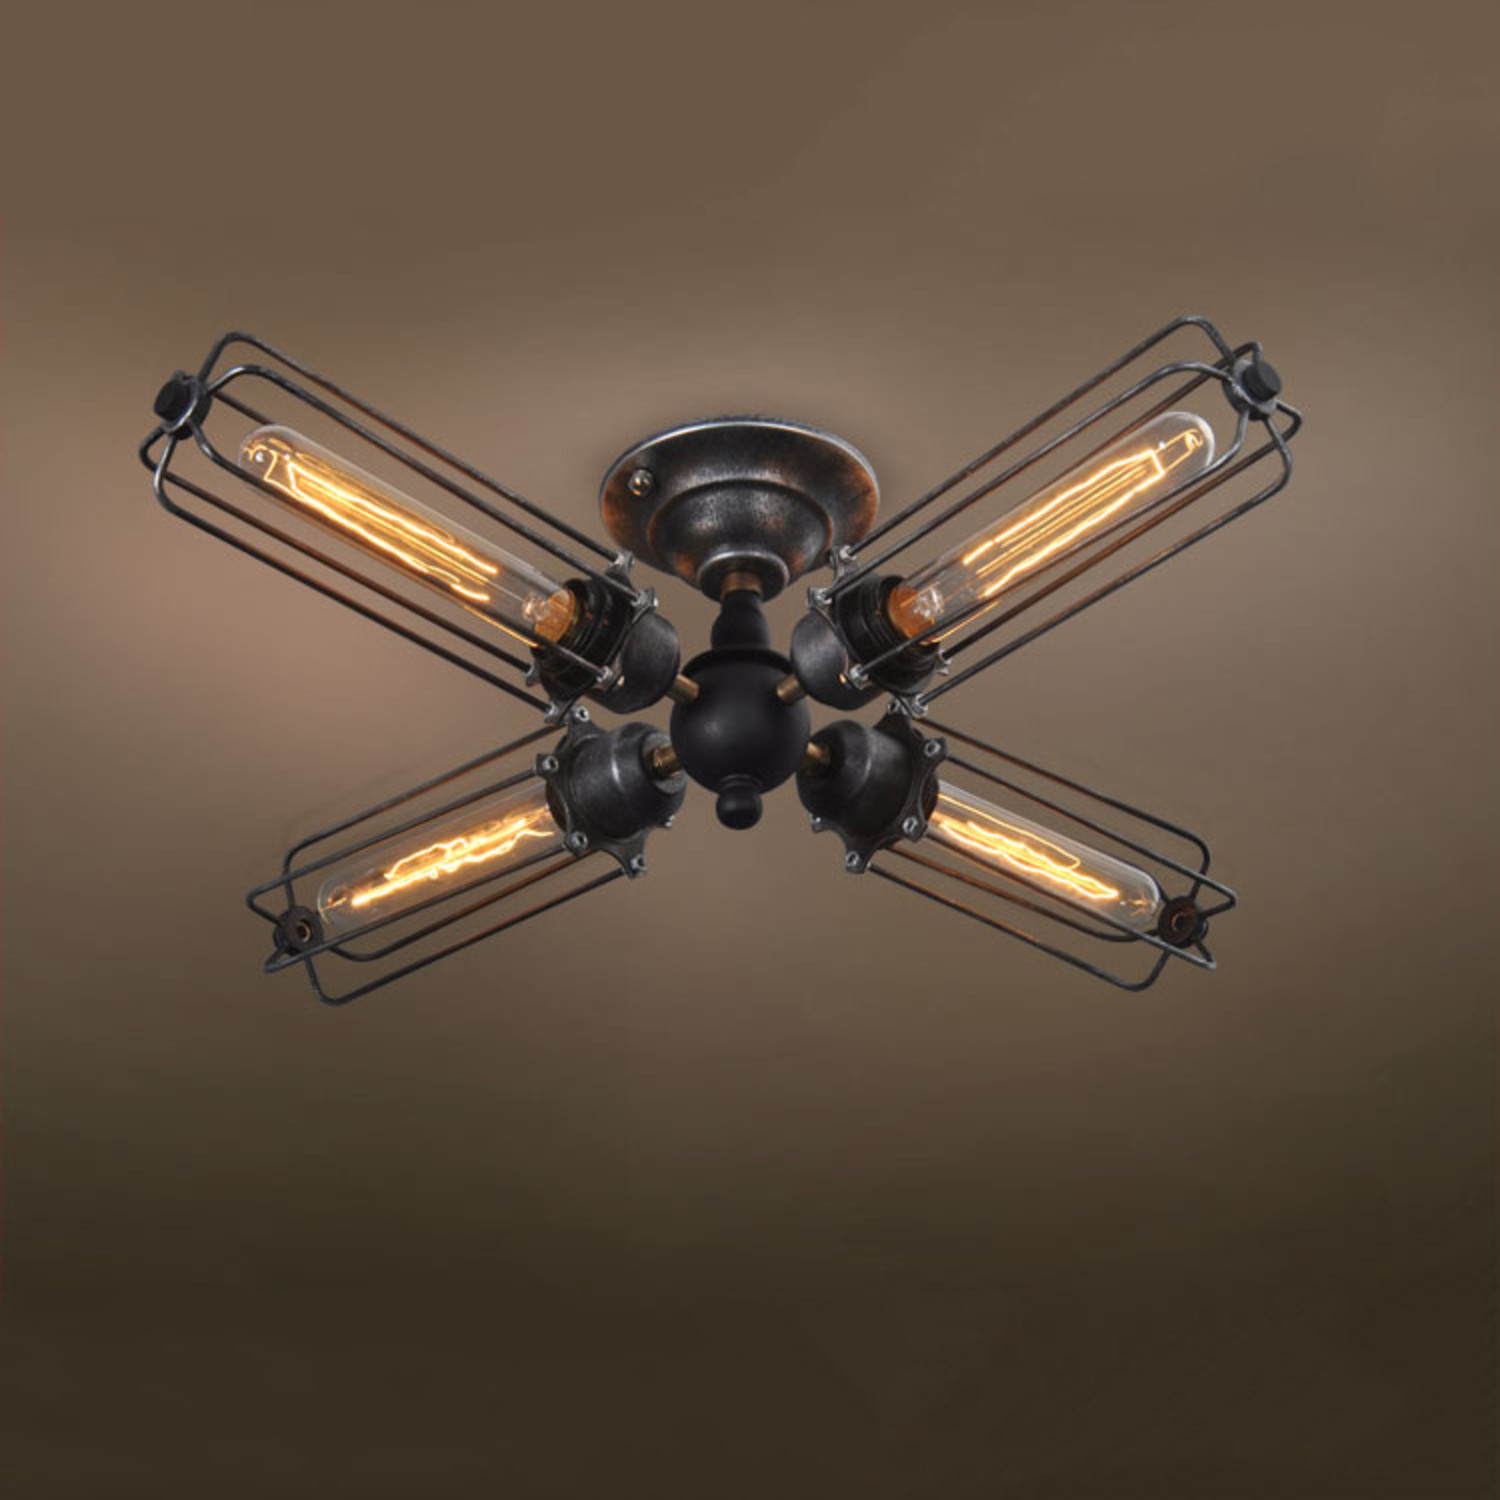 Caged Ceiling Fan With Light Fans Standard Size Rustic W: 4-Armed Industrial Ceiling Light